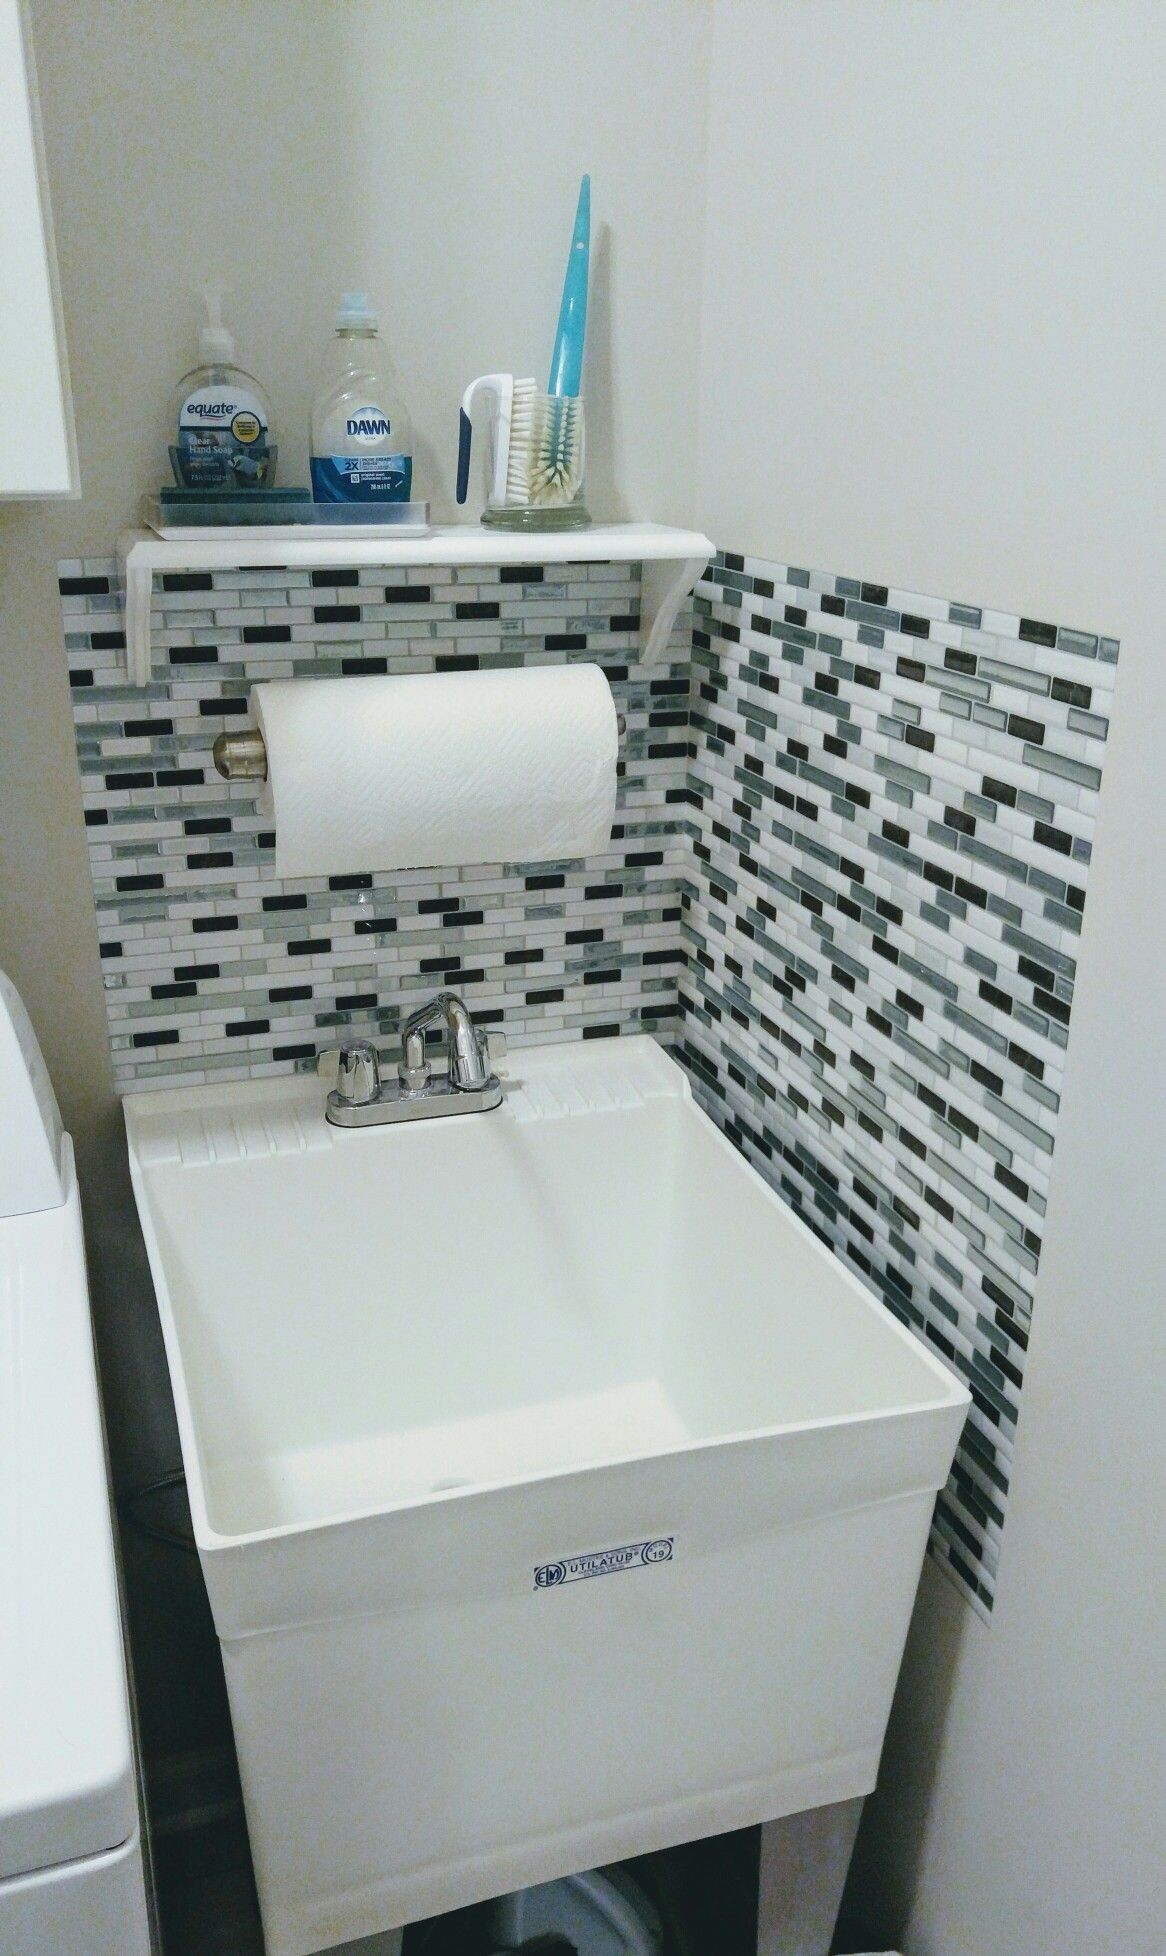 I Used Them Around The Utility Sink To Protect Walls From Water Splashing Best Investment Super Easy Cut And Ly